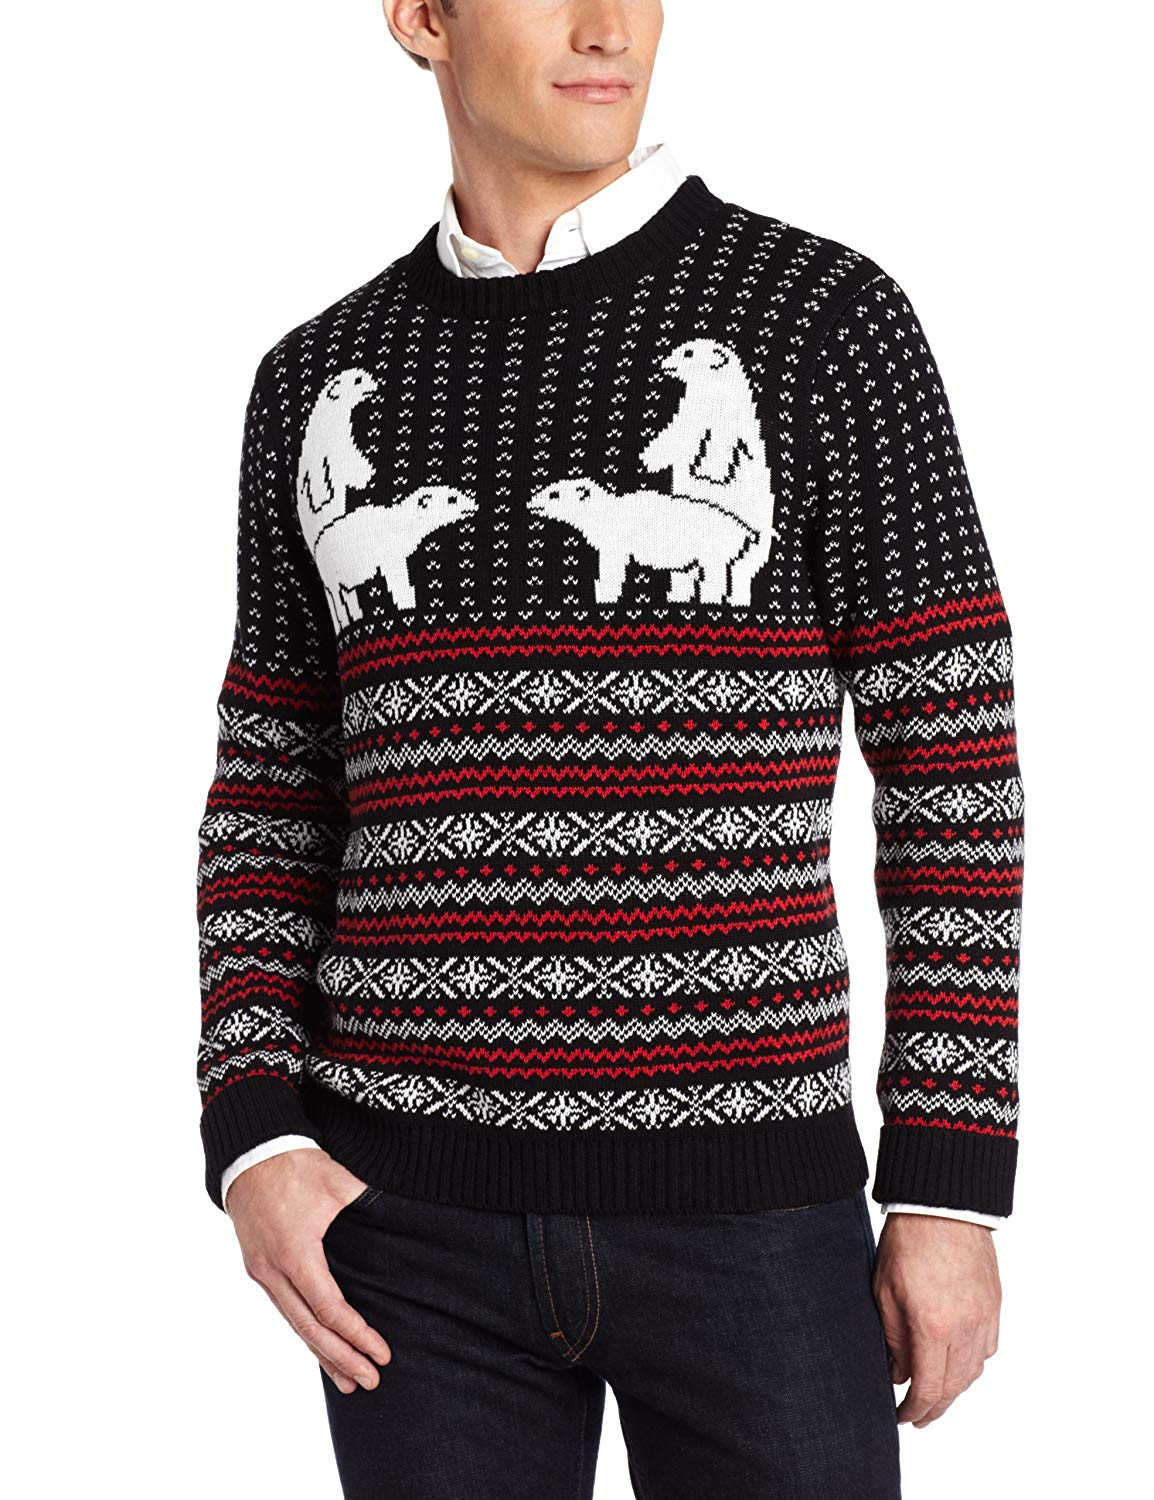 Dirty humping polar bears ugly Christmas sweater